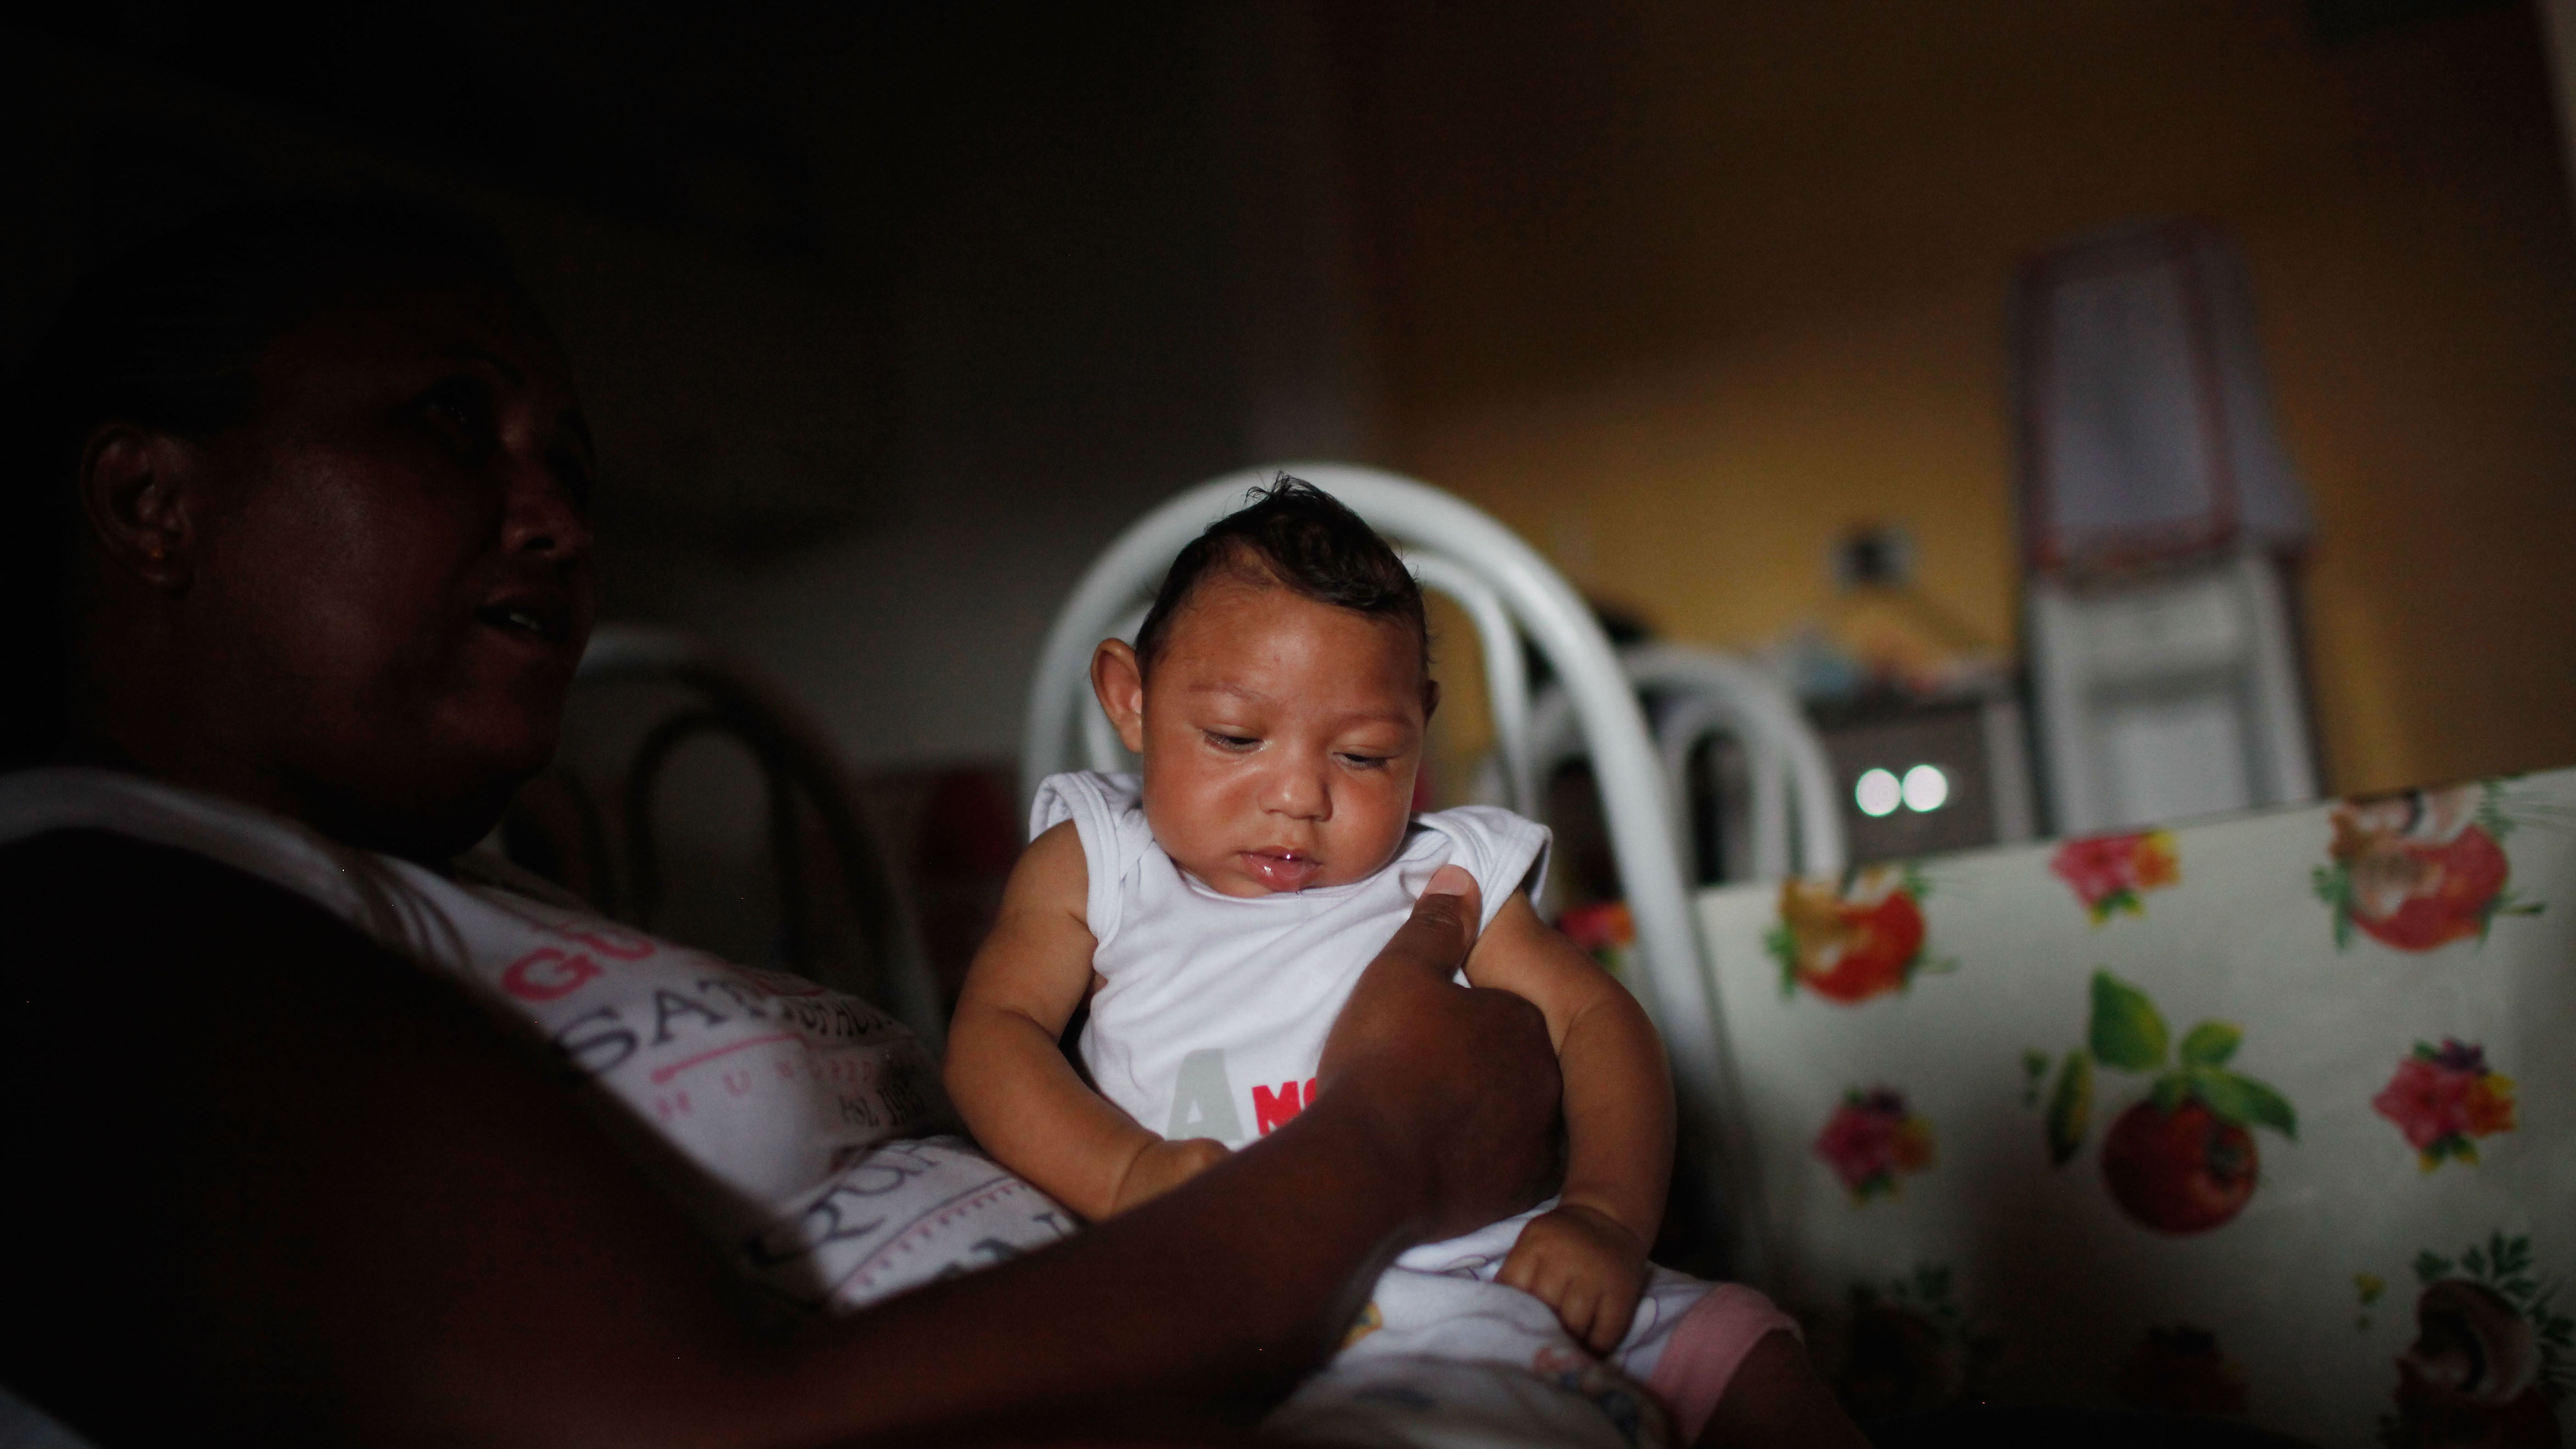 We've Found the Most Compelling Evidence Yet That Links Zika to Birth Defects